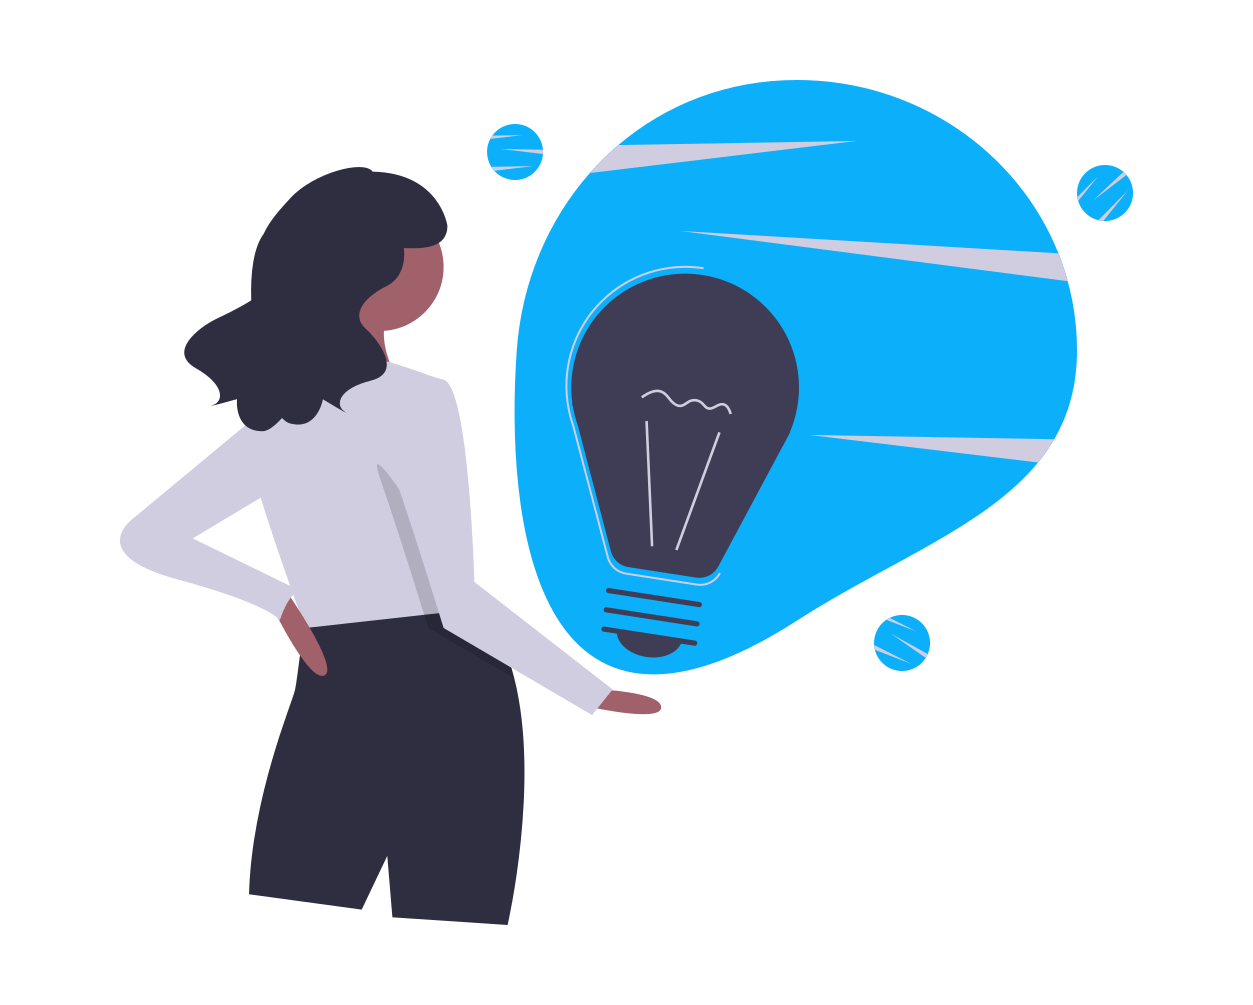 How to start a small business: start with an idea